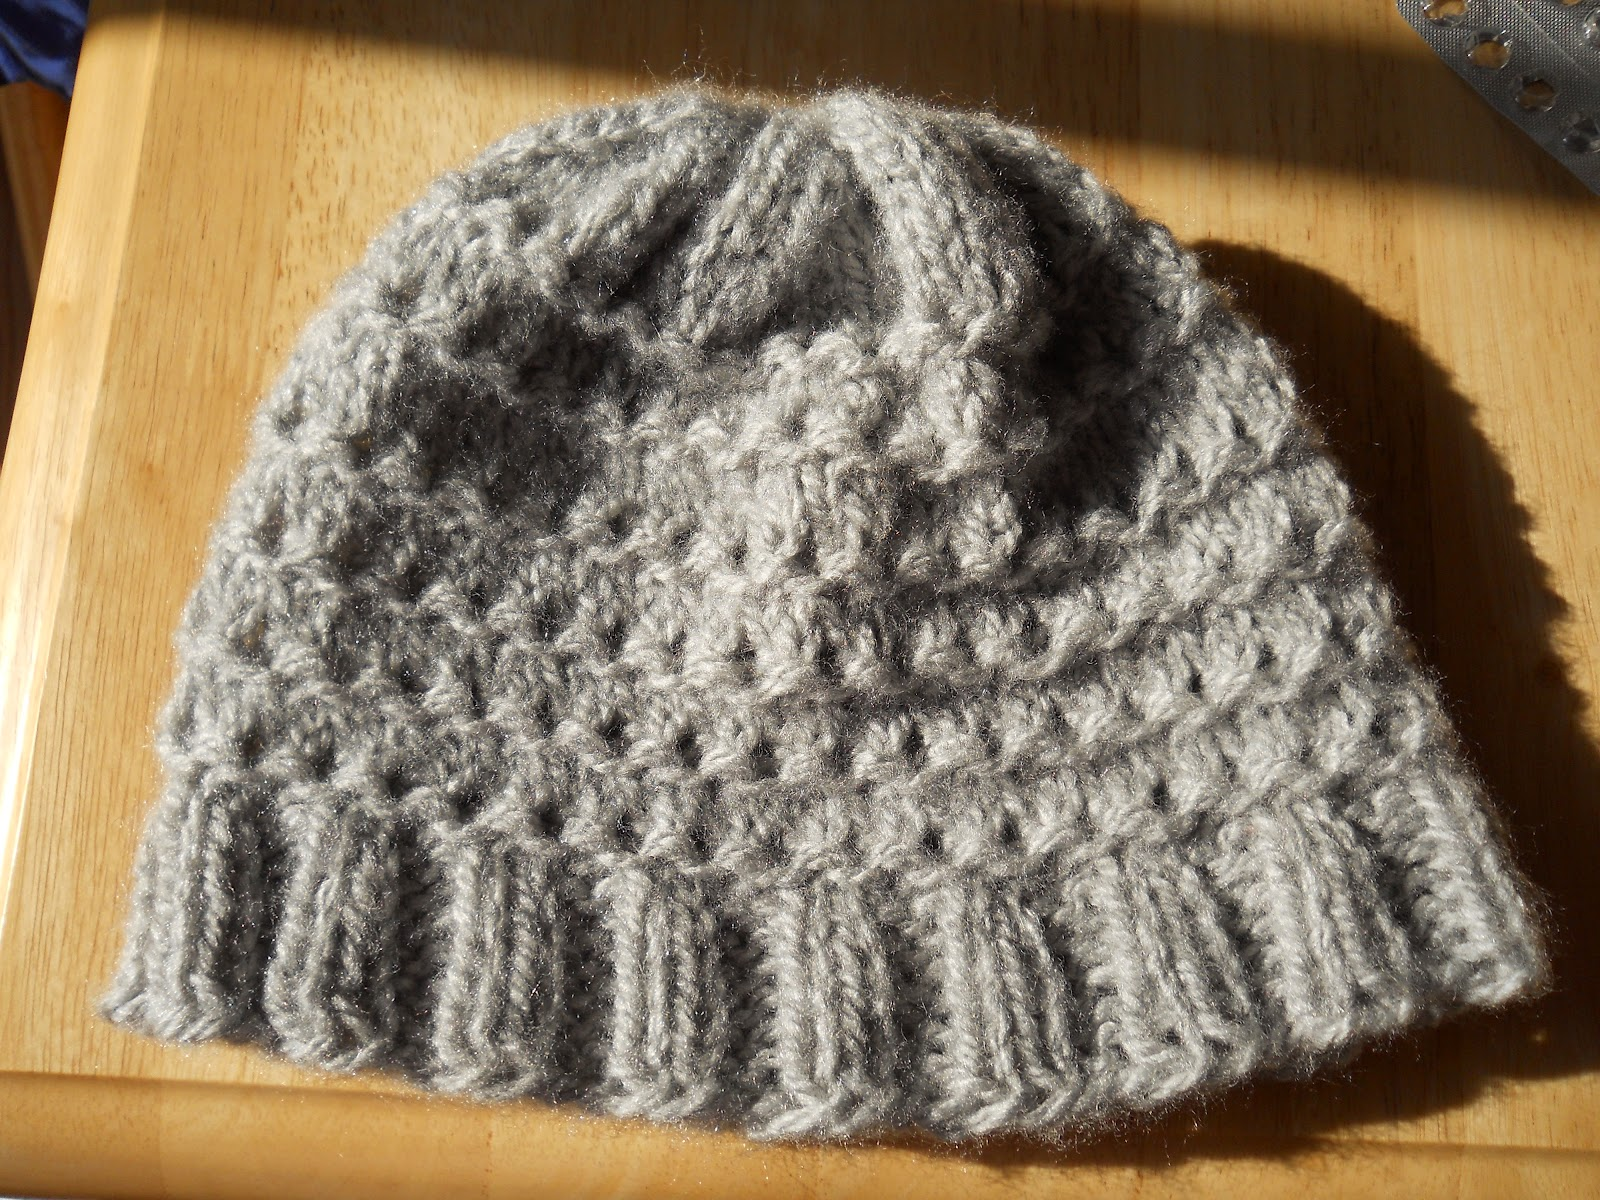 Knitting with Schnapps: Introducing the Links of Hope Chemo Cap!